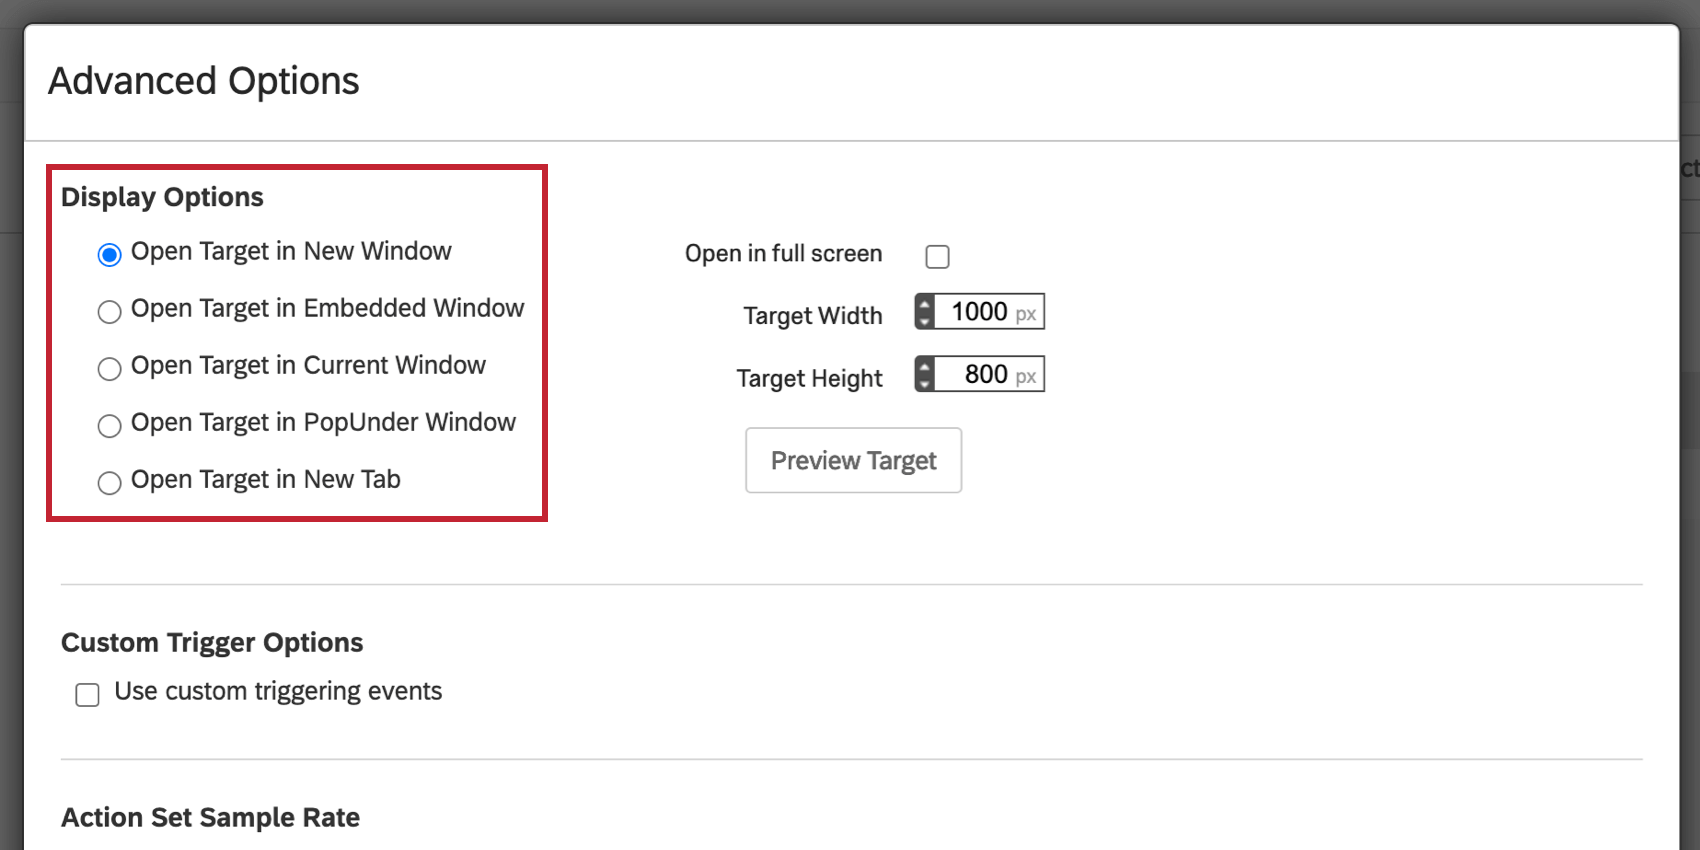 image of the open target in new window selection for display options.